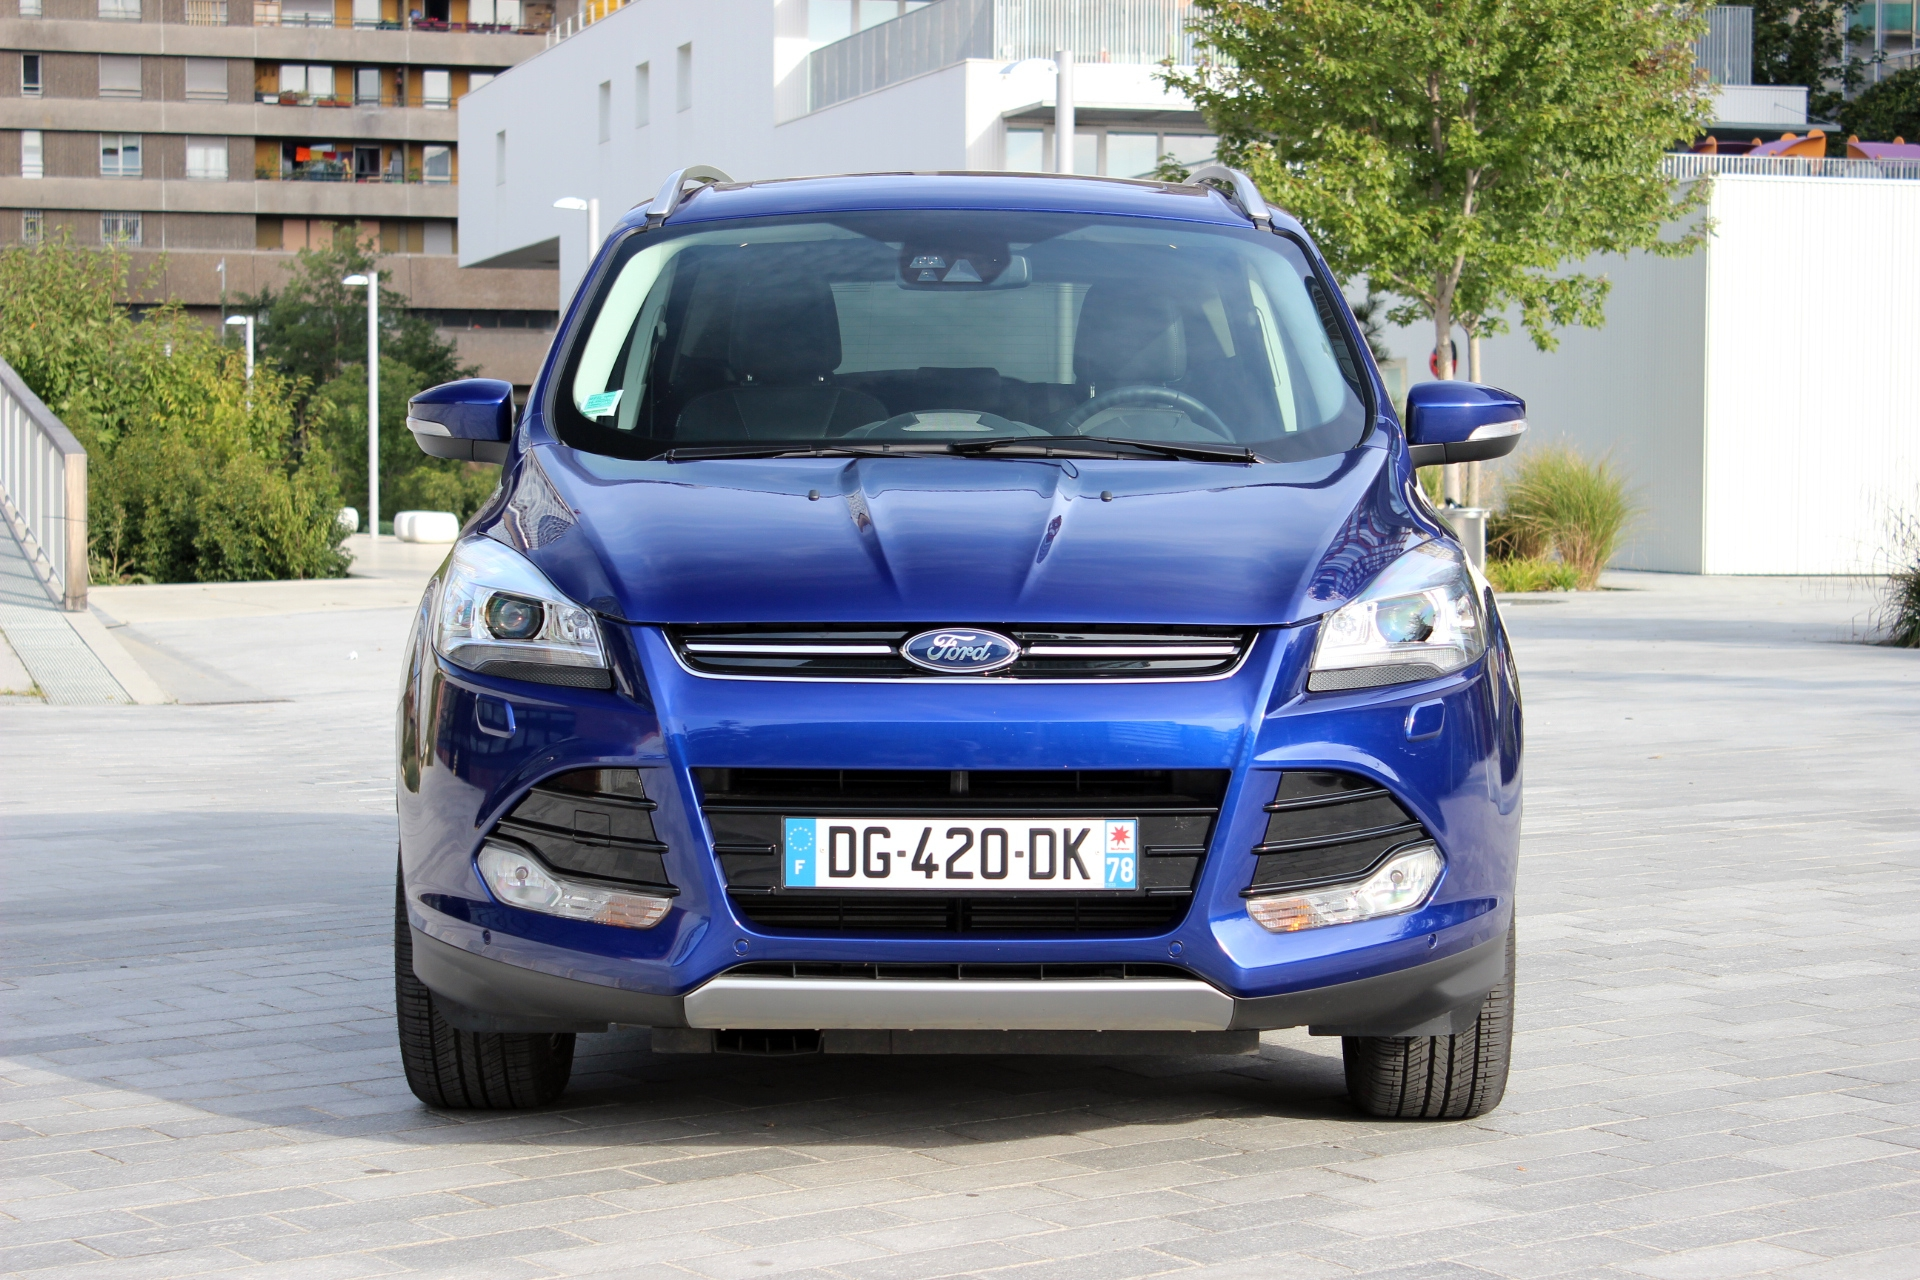 essai ford kuga 2017 essai ford kuga 2017 diesel titanium crossover blog auto essai ford kuga. Black Bedroom Furniture Sets. Home Design Ideas